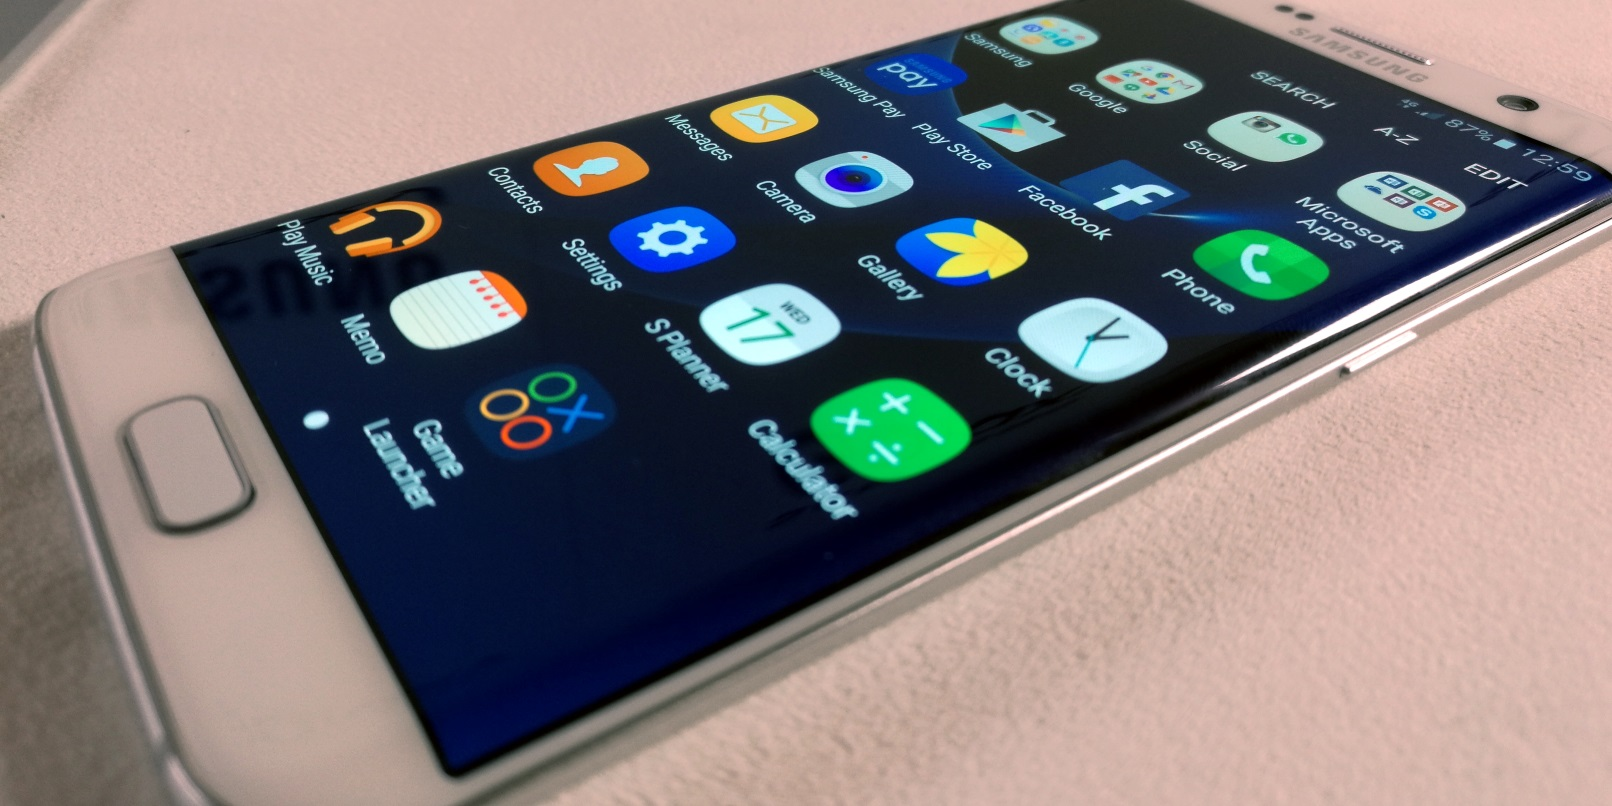 Samsung's new S7 and S7 Edge look incredible